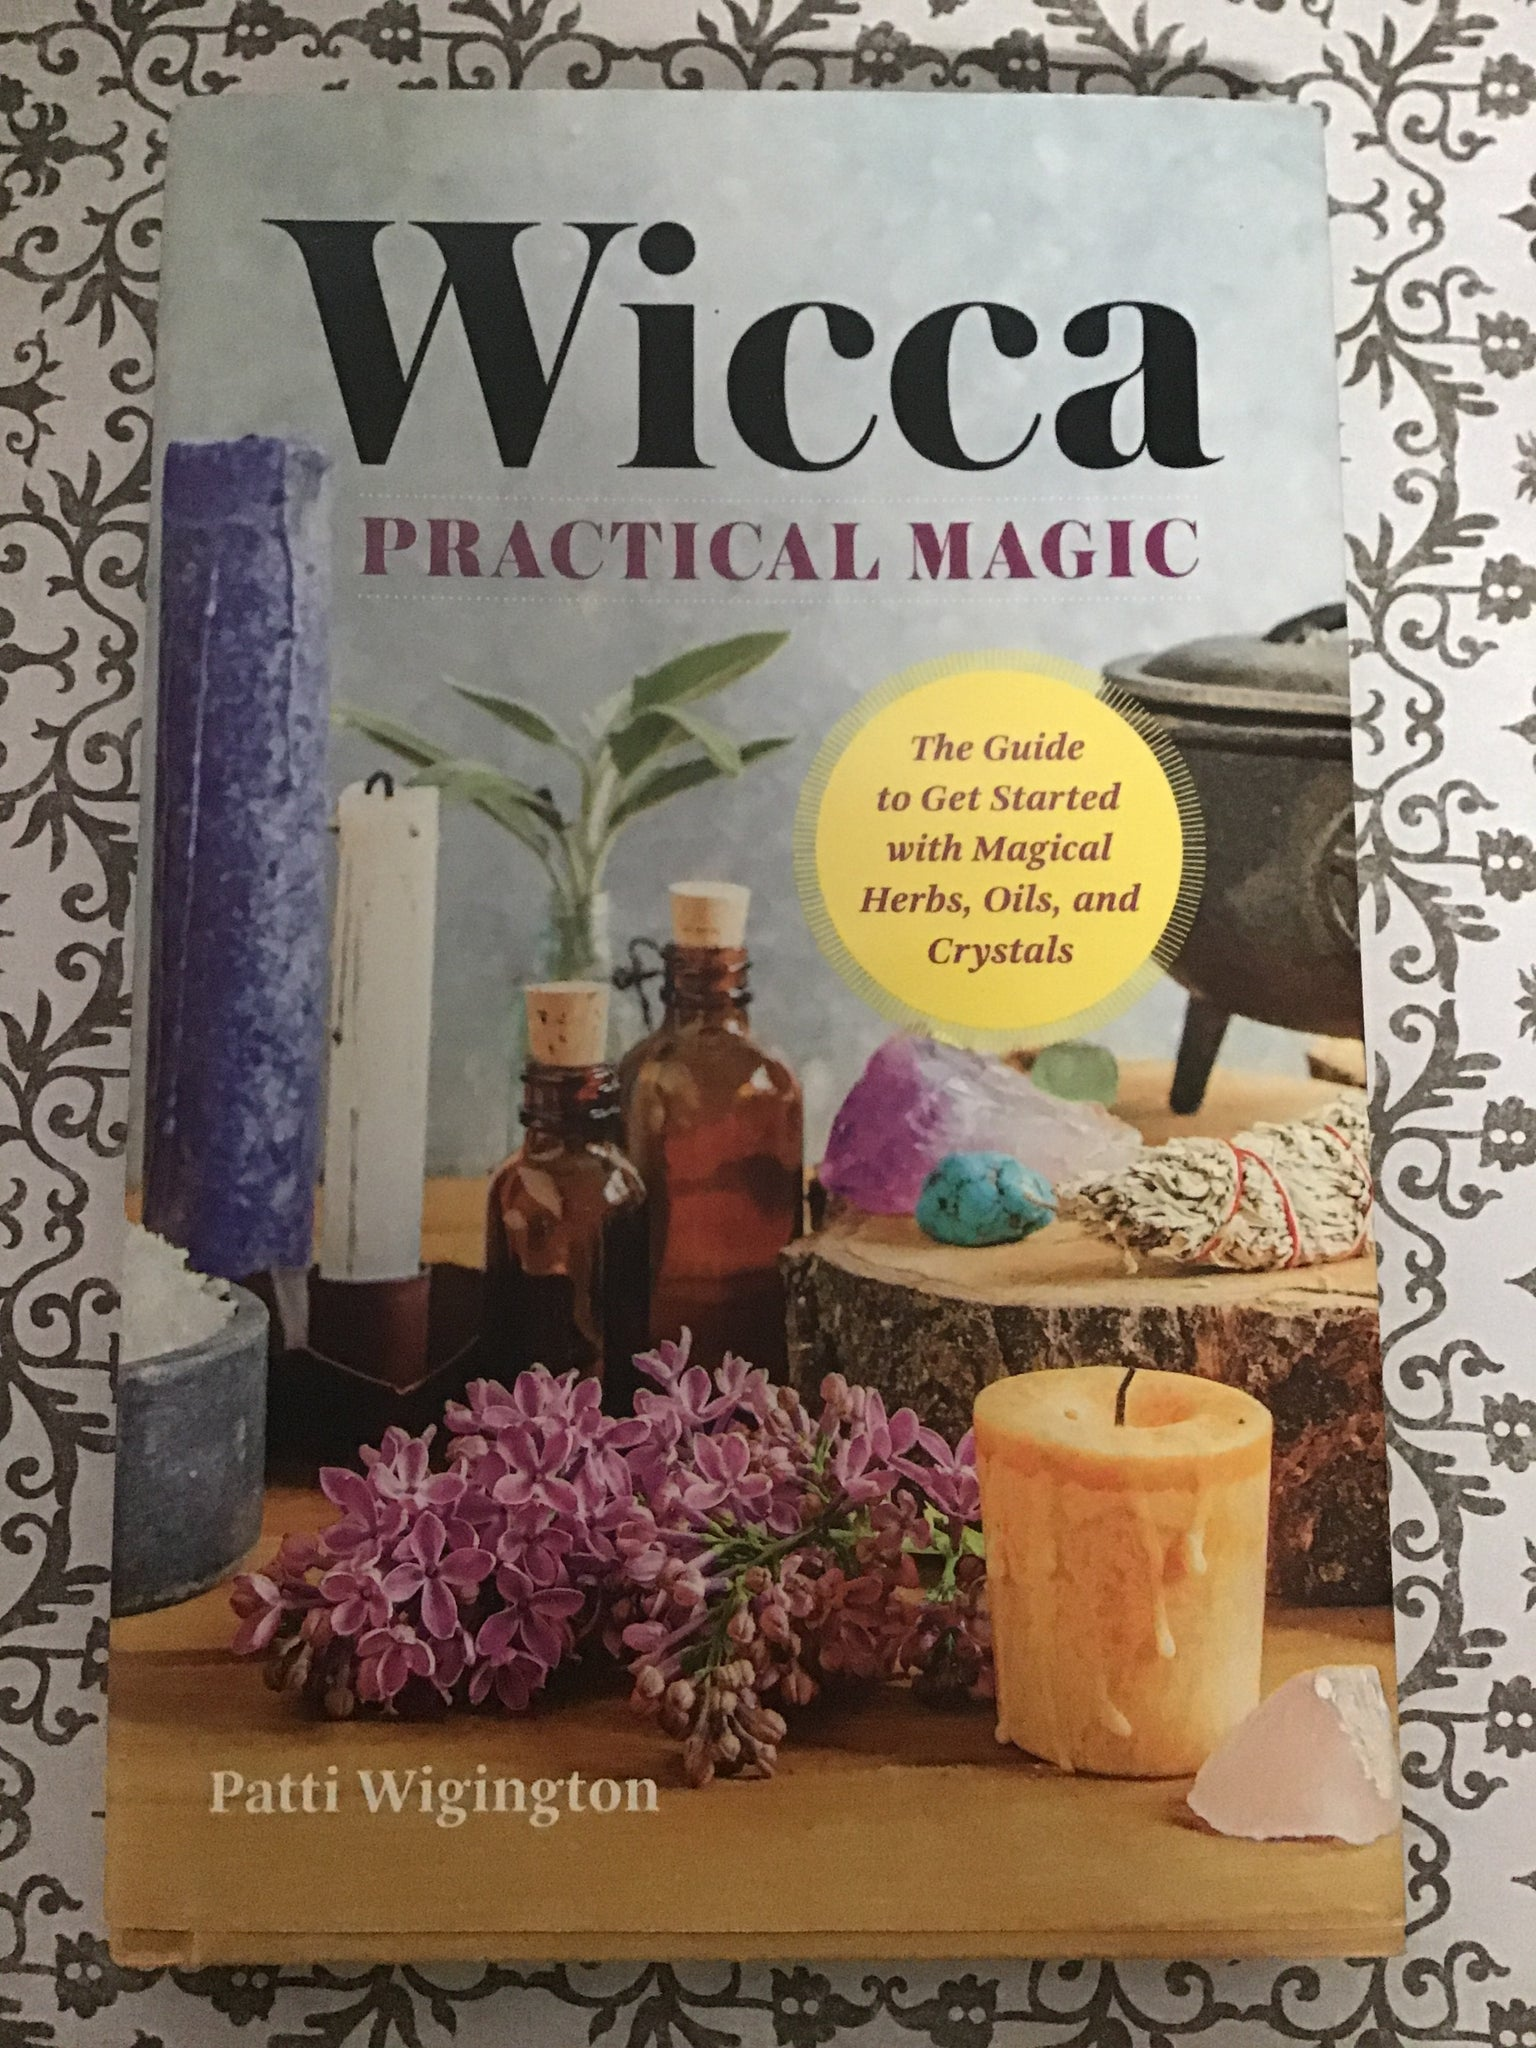 Wicca Practical Magic - Patti Wigington ( Used - Good Condition)